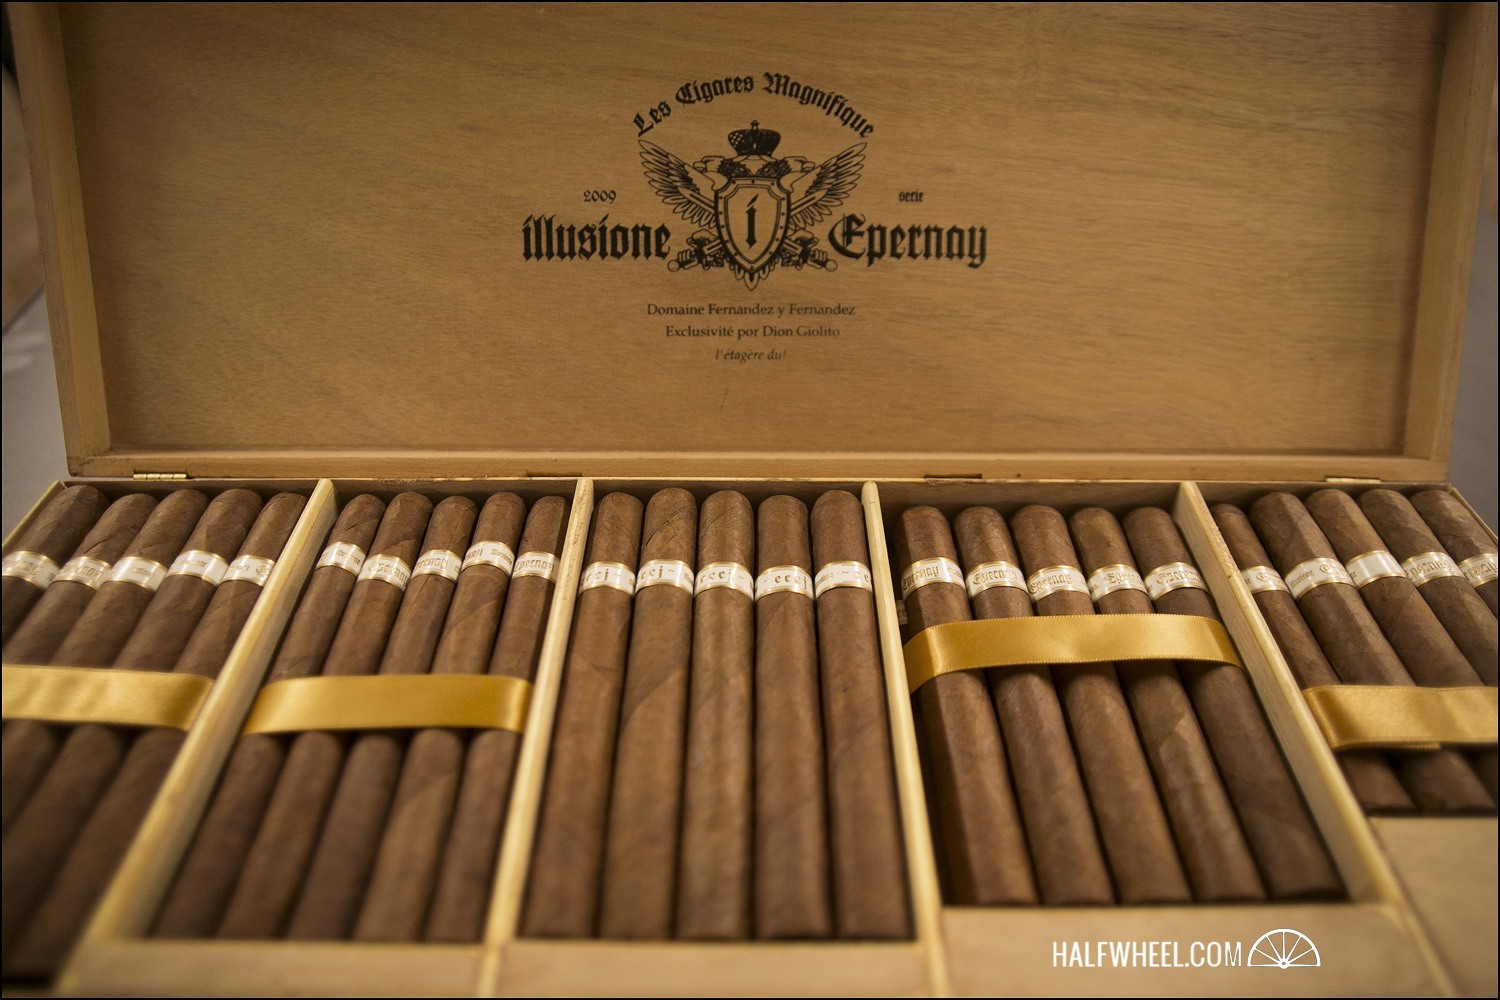 Illusione Epernay Chest 3